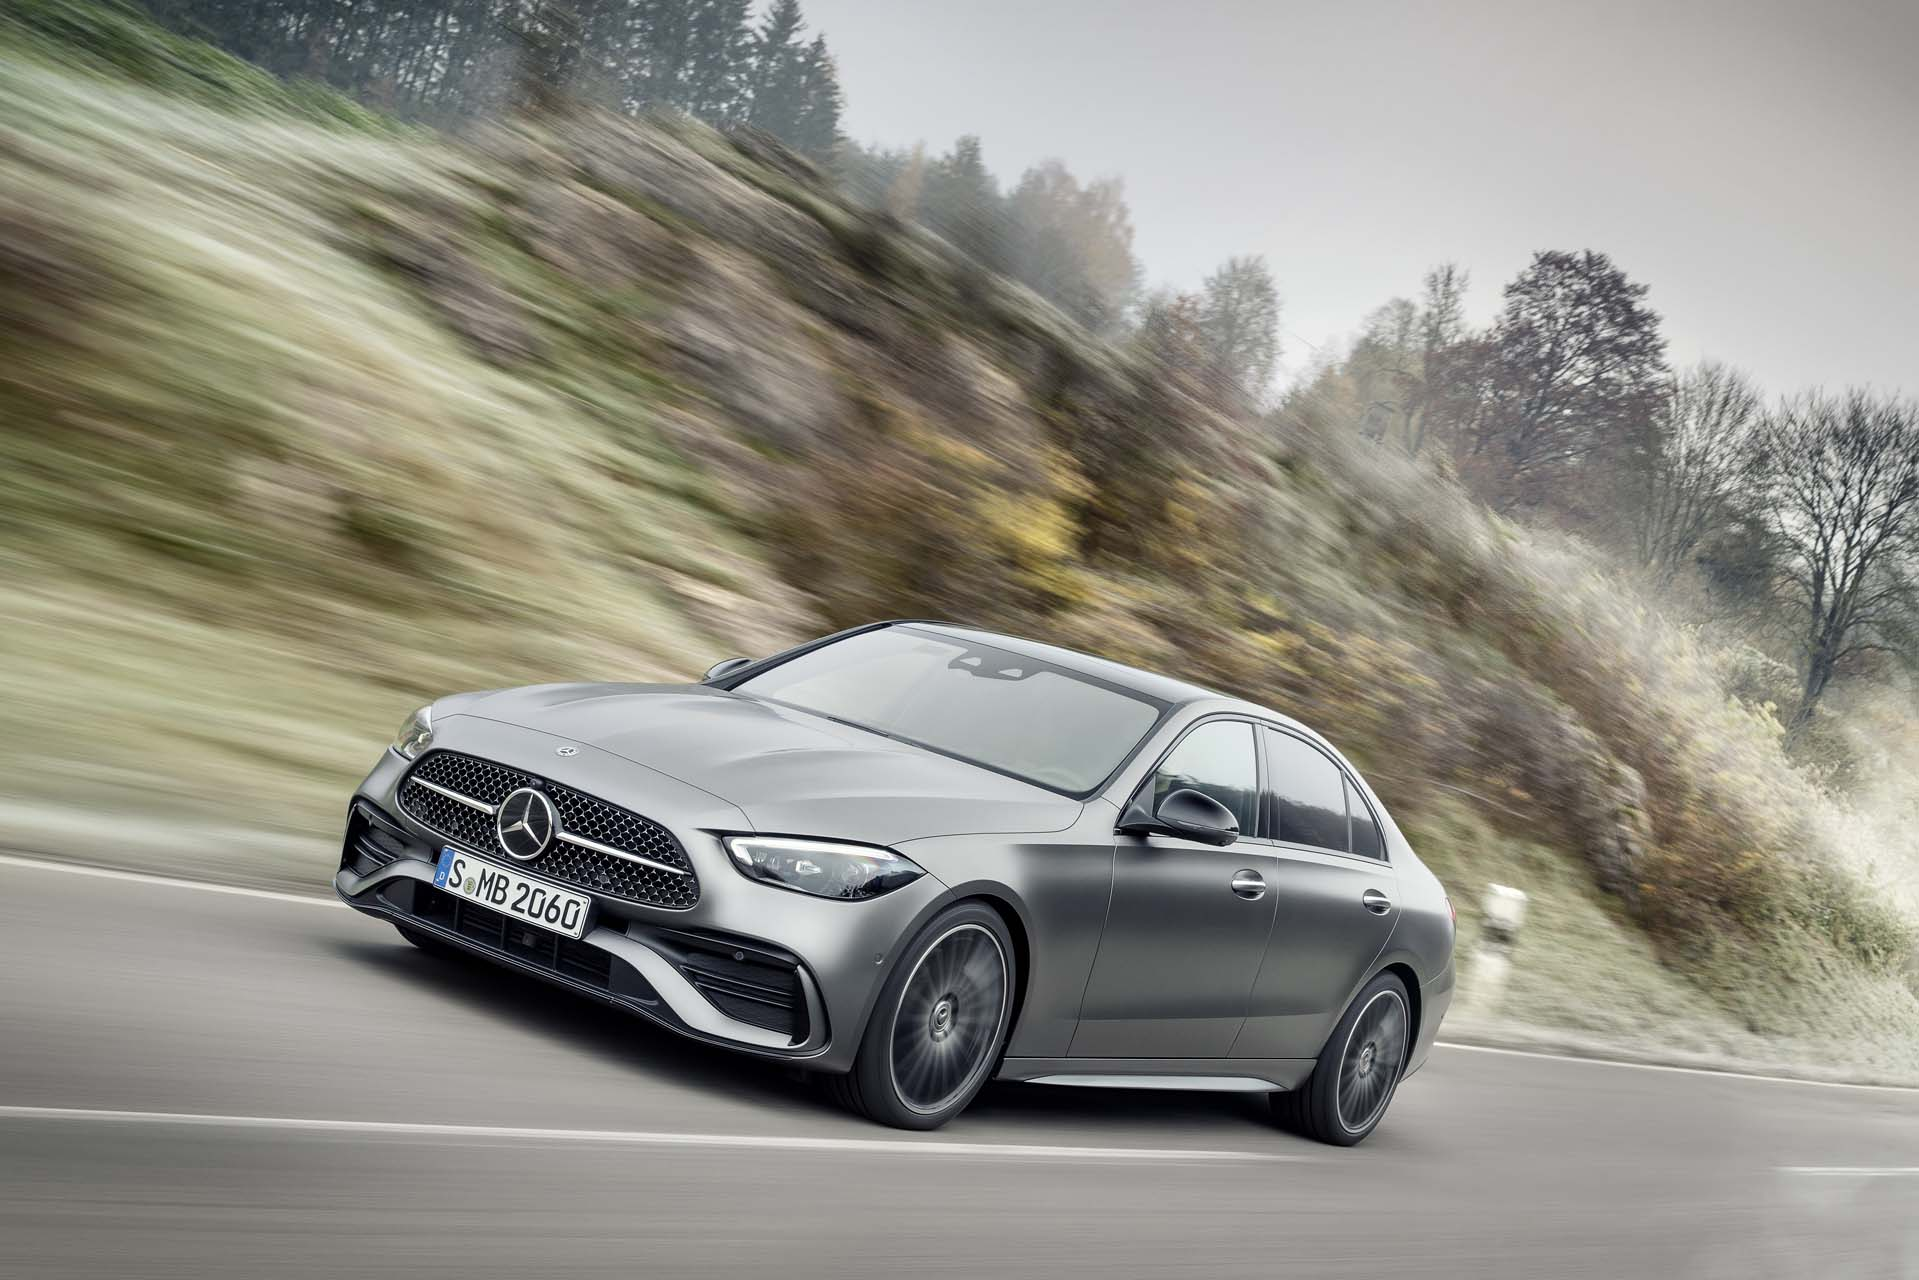 Preview: 2022 Mercedes-Benz C-Class arrives with mild-hybrid turbo-4, luxurious new cabin